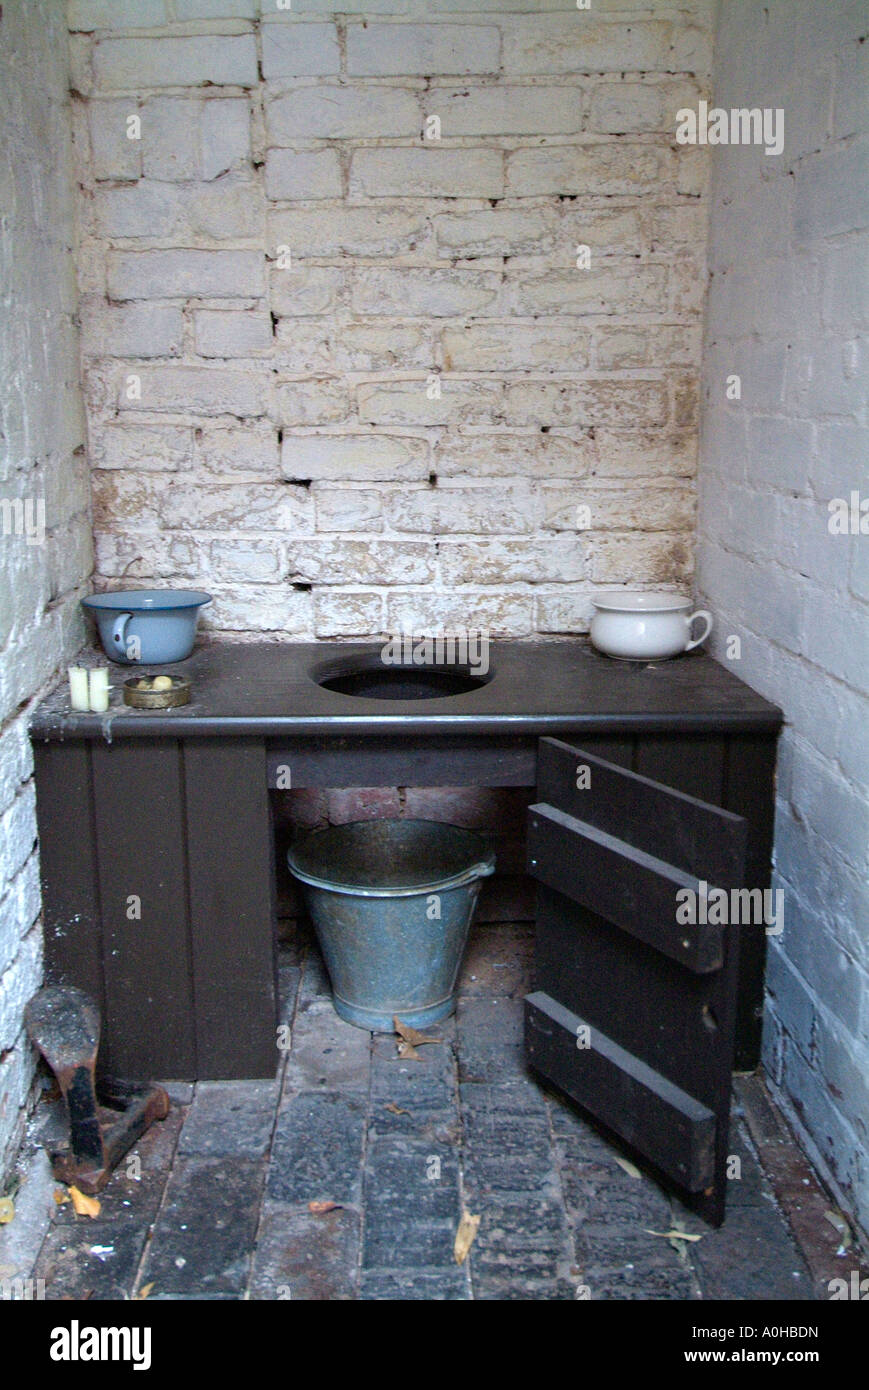 Toilet Lavatory Birmingham UK England Back To Museum Bucket Soil History Historic Old Time Fashioned Heritage Restored Victorian